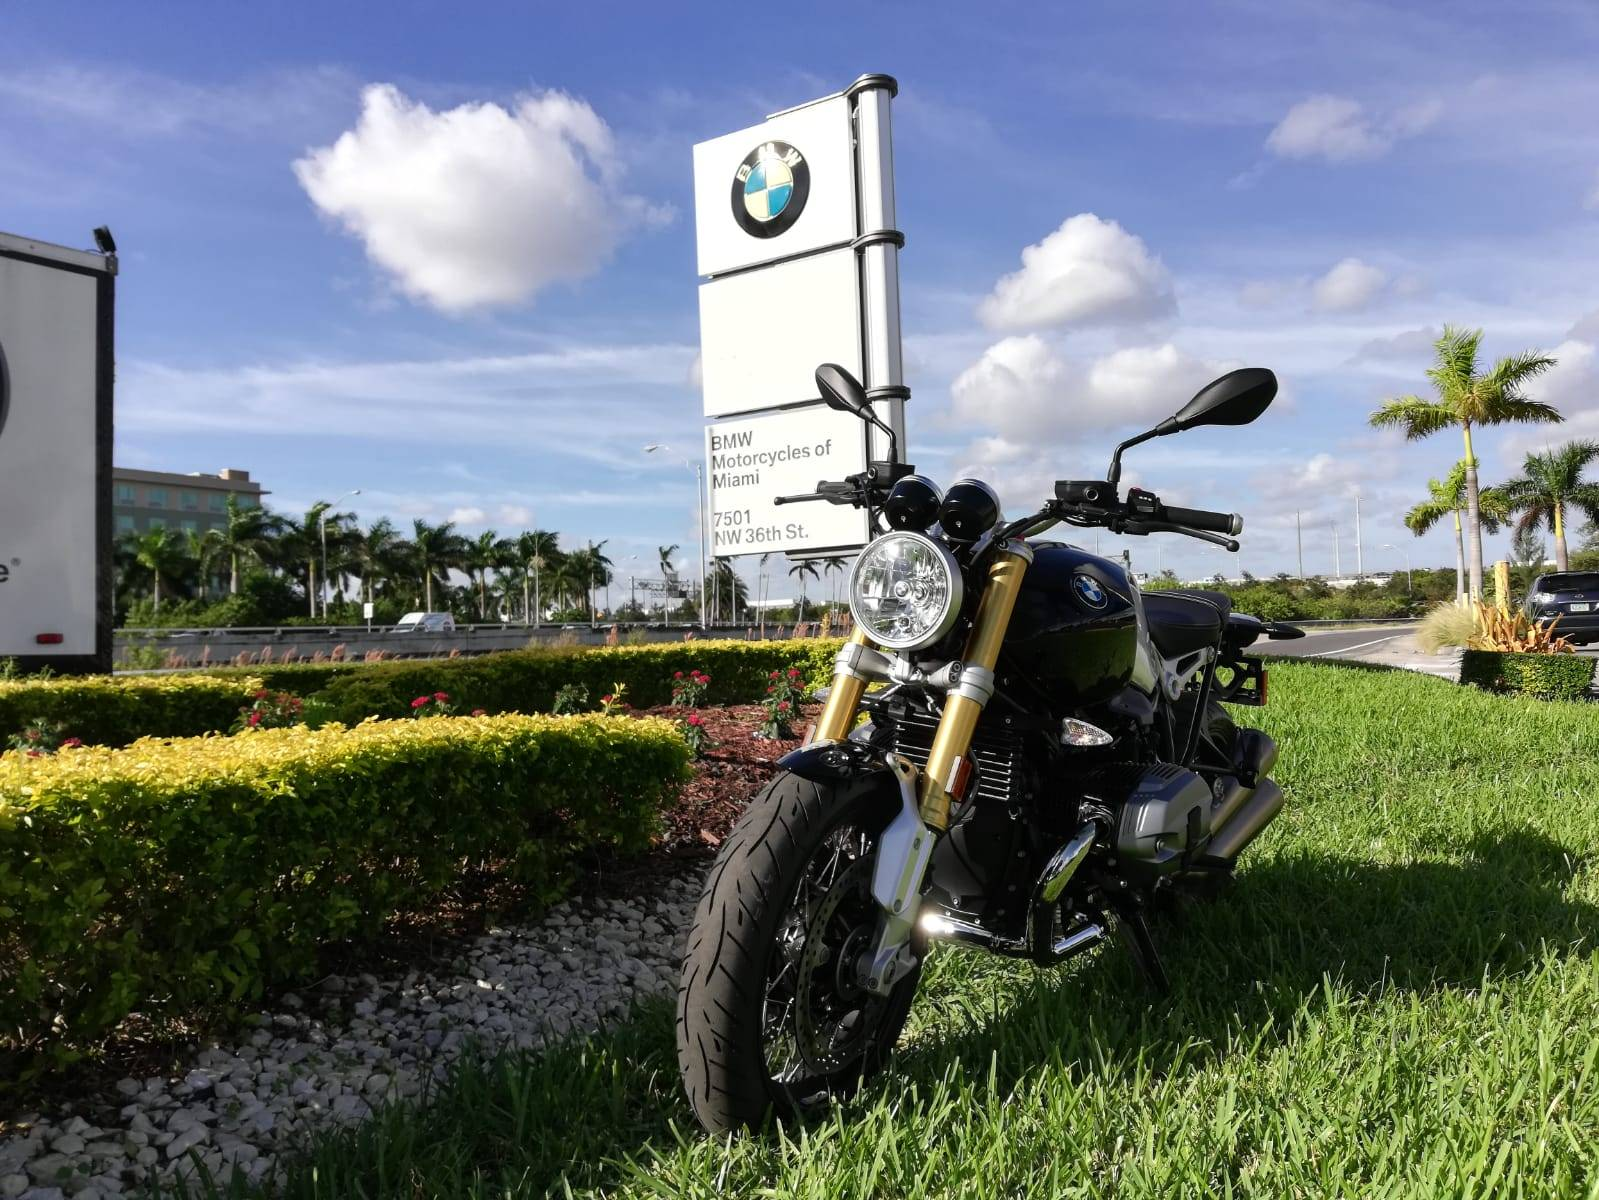 New 2019 BMW R NineT for sale, BMW for sale, BMW Motorcycle Café Racer, new BMW Caffe, Cafe Racer, BMW - Photo 3